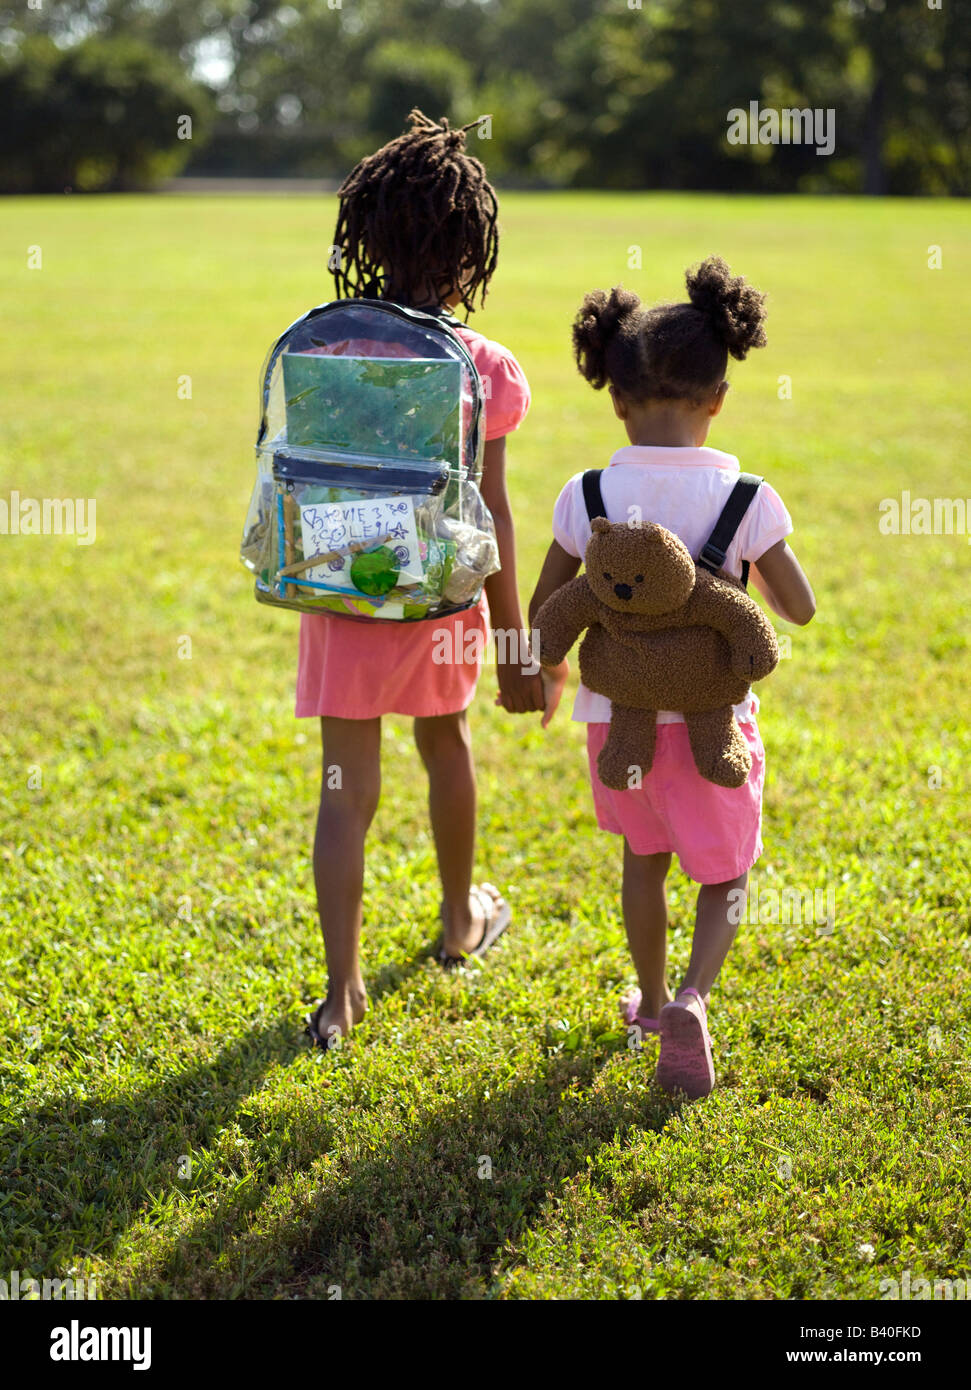 Two young girls carrying backpacks walking to school in Chicago park - Stock Image